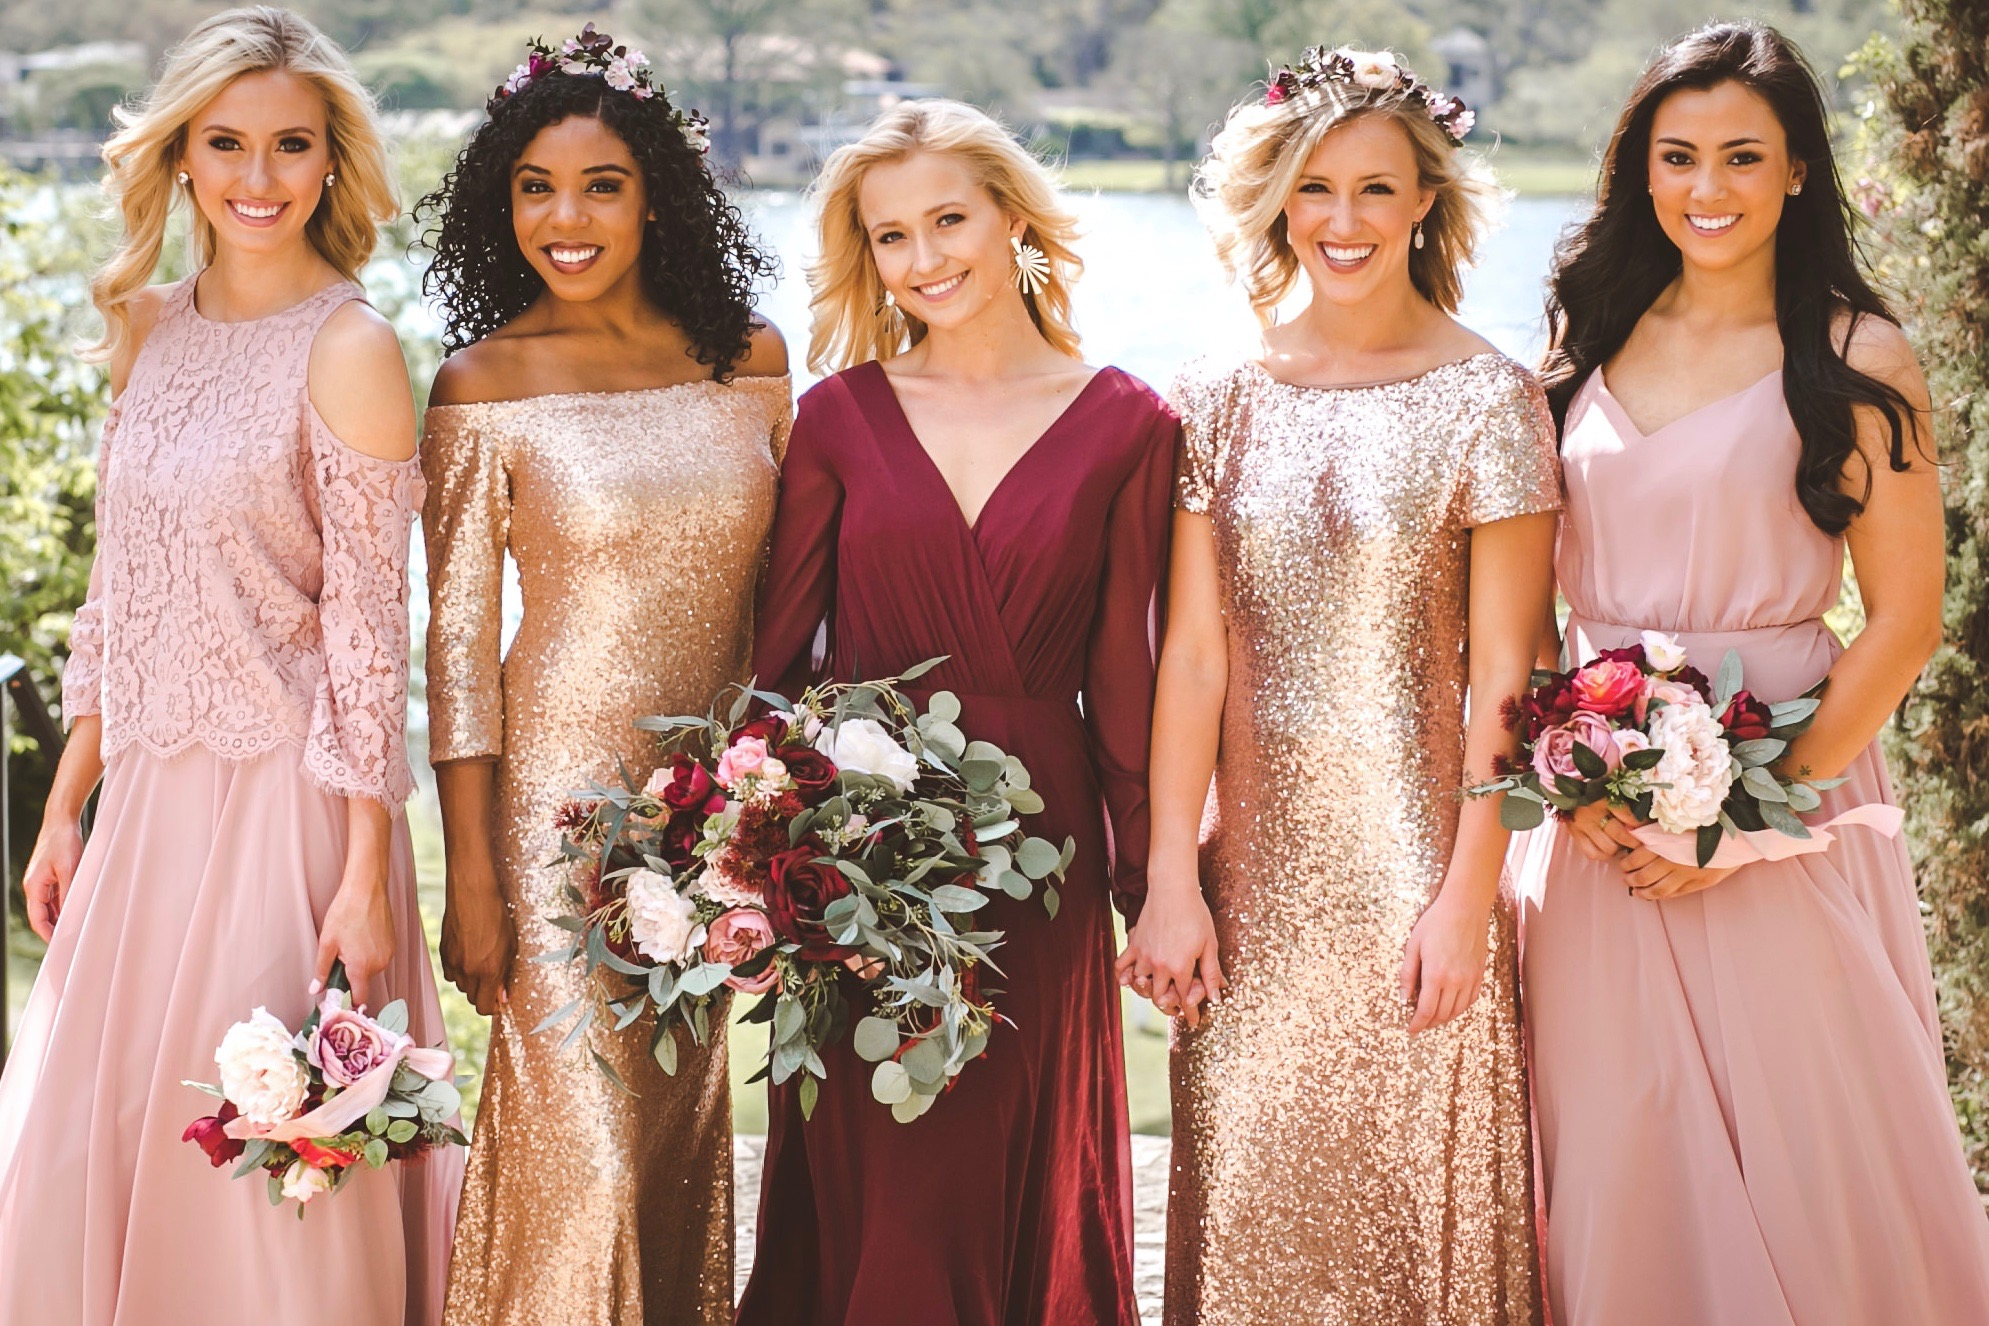 rose gold, matte rose gold, rose quartz chiffon, and marsala in chiffon, lace, and sequin styles.